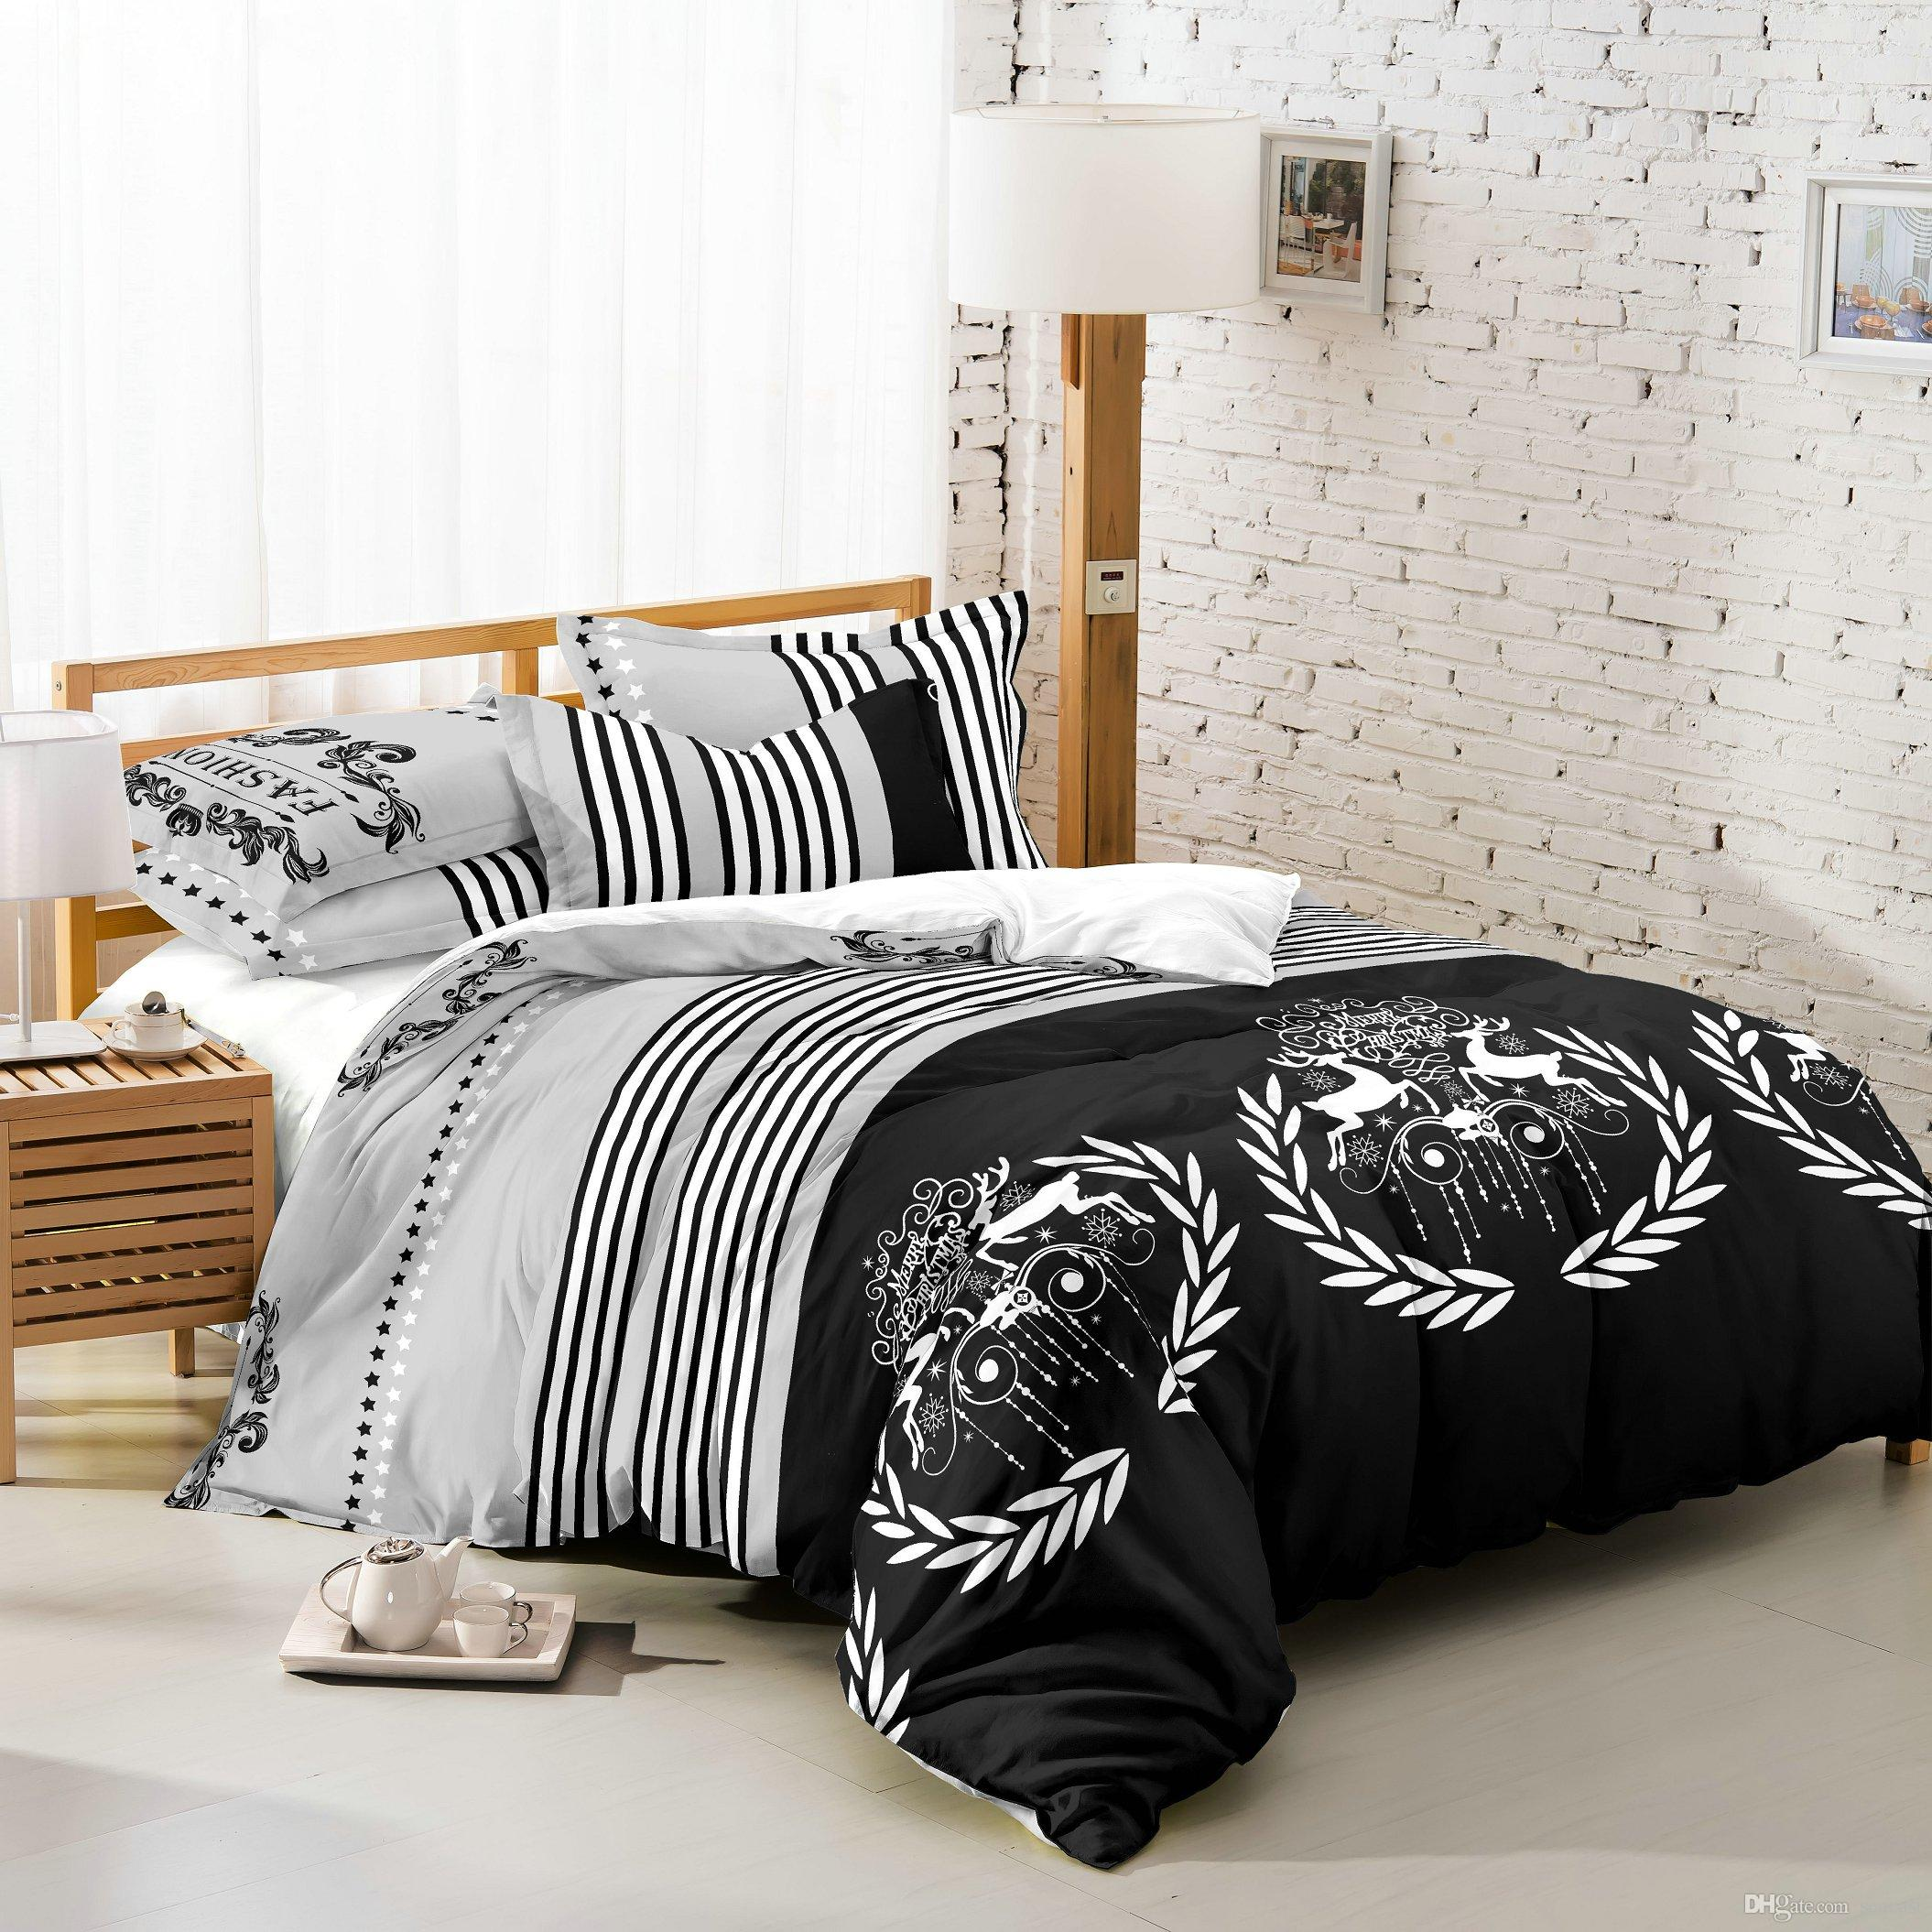 duvet cover doona size decor dorm mandala white black queen covers pin